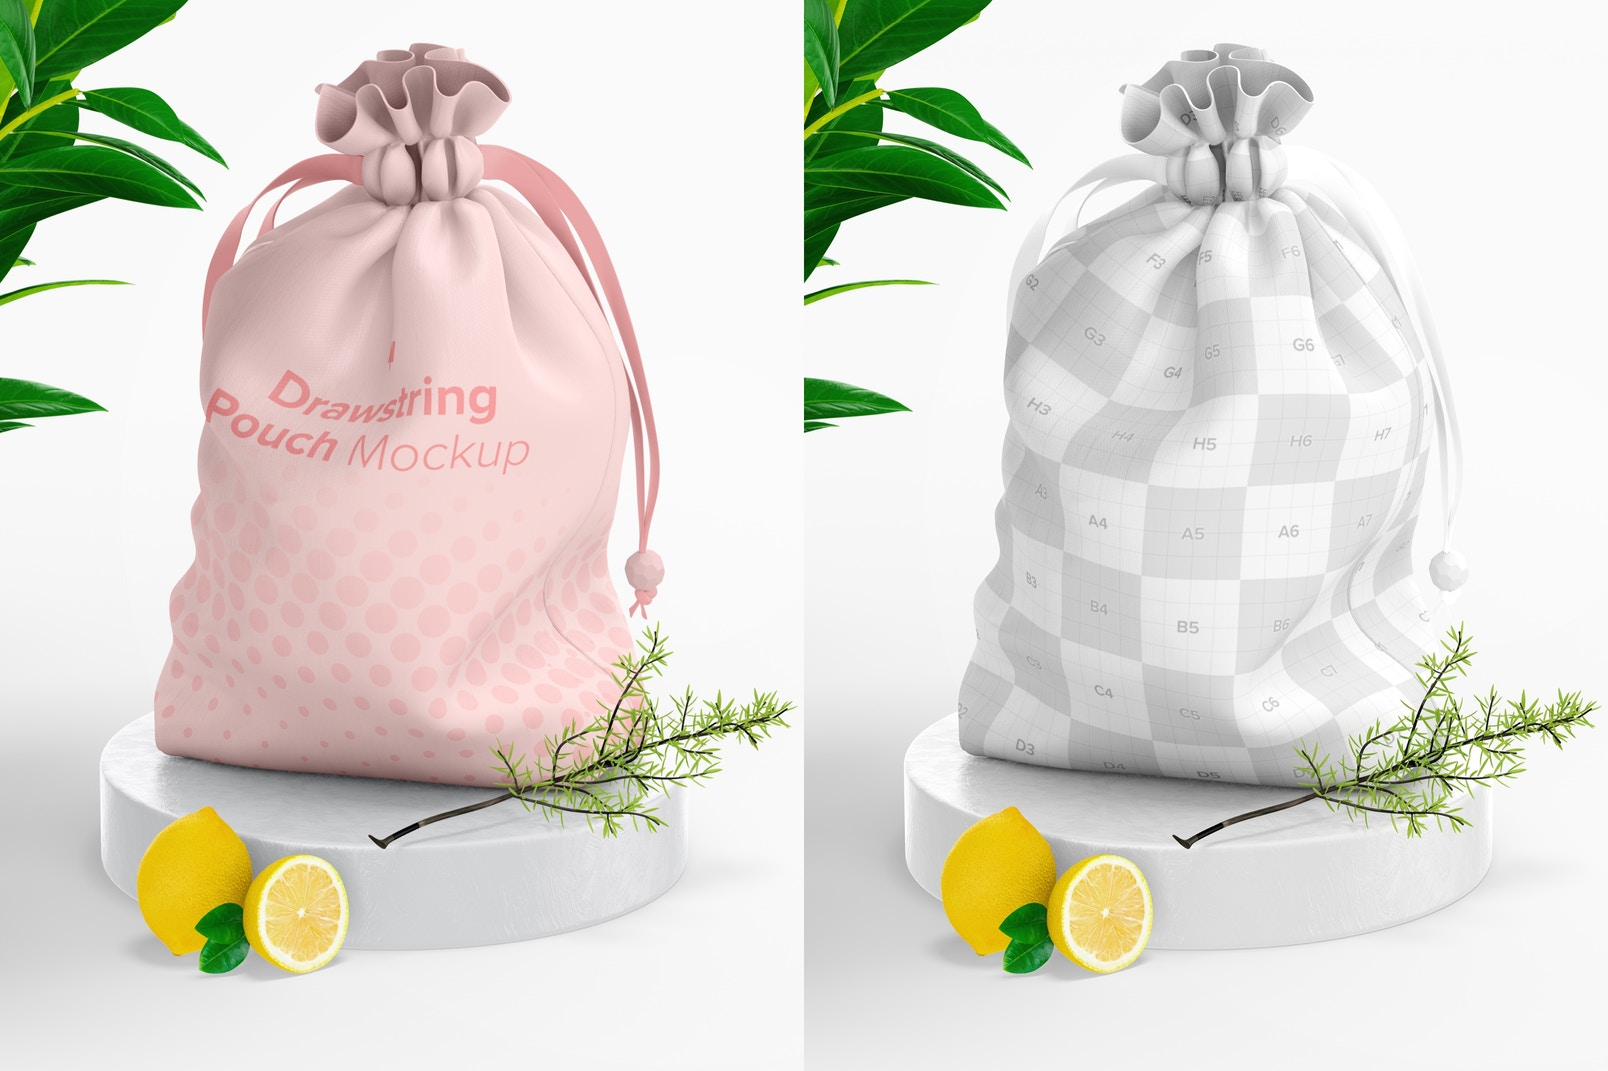 Drawstring Pouch Mockup, Right View